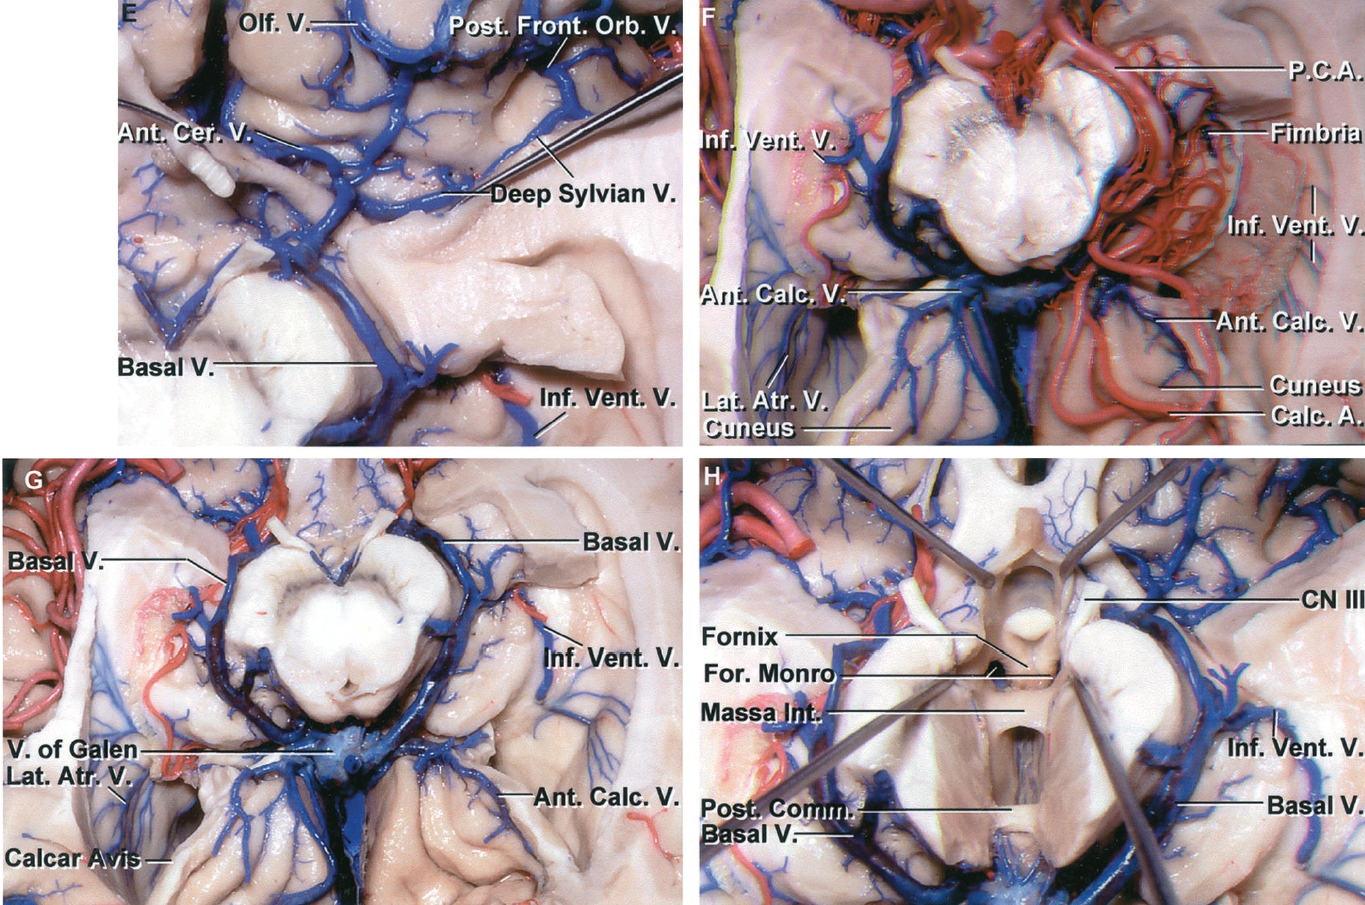 FIGURE 4.4. E-H. E, enlarged view of the area below the left anterior perforated substance. The olfactory, anterior cerebral, posterior fronto-orbital, and deep sylvian veins join to form the basal vein. The inferior ventricular vein joins the basal vein at the posterior edge of the cerebral peduncle. F, inferior view of the cerebral hemispheres with the parahippocampal gyri removed to expose the temporal horns and atria. The left fimbria and posterior cerebral artery have been preserved. The left inferior ventricular vein passes above the choroid plexus and through the choroidal fissure located between the fimbria and thalamus. The lateral atrial veins also pass through the choroidal fissure. The lower lip of the calcarine sulcus has been removed on both sides to expose the anterior calcarine veins and calcarine artery and the upper lip of the fissure formed by the cuneus. G, the left fimbria, posterior cerebral artery, and choroid plexus have been removed to expose the inferior ventricular vein crossing the roof of the temporal horn. The anterior calcarine veins, which empty into the vein of Galen, are exposed below the cuneus. H, the floor of the third ventricle has been removed to expose the fornix coursing above the foramen of Monro. The massa intermedia and posterior commissure are exposed. The basal veins pass around the midbrain to join the vein of Galen. Small hypothalamic veins join the anterior end of the basal vein. Ant., anterior; Atr., atrial; Calc., calcarine; Cer., cerebral; CN, cranial nerve; Comm., commissure; For., foramen; Front., frontal; Front.Orb., fronto orbital; Inf., inferior; Int., intermedia; Lat., lateral; Occip., occipital; Olf., olfactory; Paraterm., paraterminal; P.C.A., posterior cerebral artery; Ped., peduncular; Pet., petrosal; Post., posterior; Str., straight; Sup., superior; Temp., temporal; Tent., tentorial; Tr., tract; Trans., transverse; V., vein; Vent., ventral.